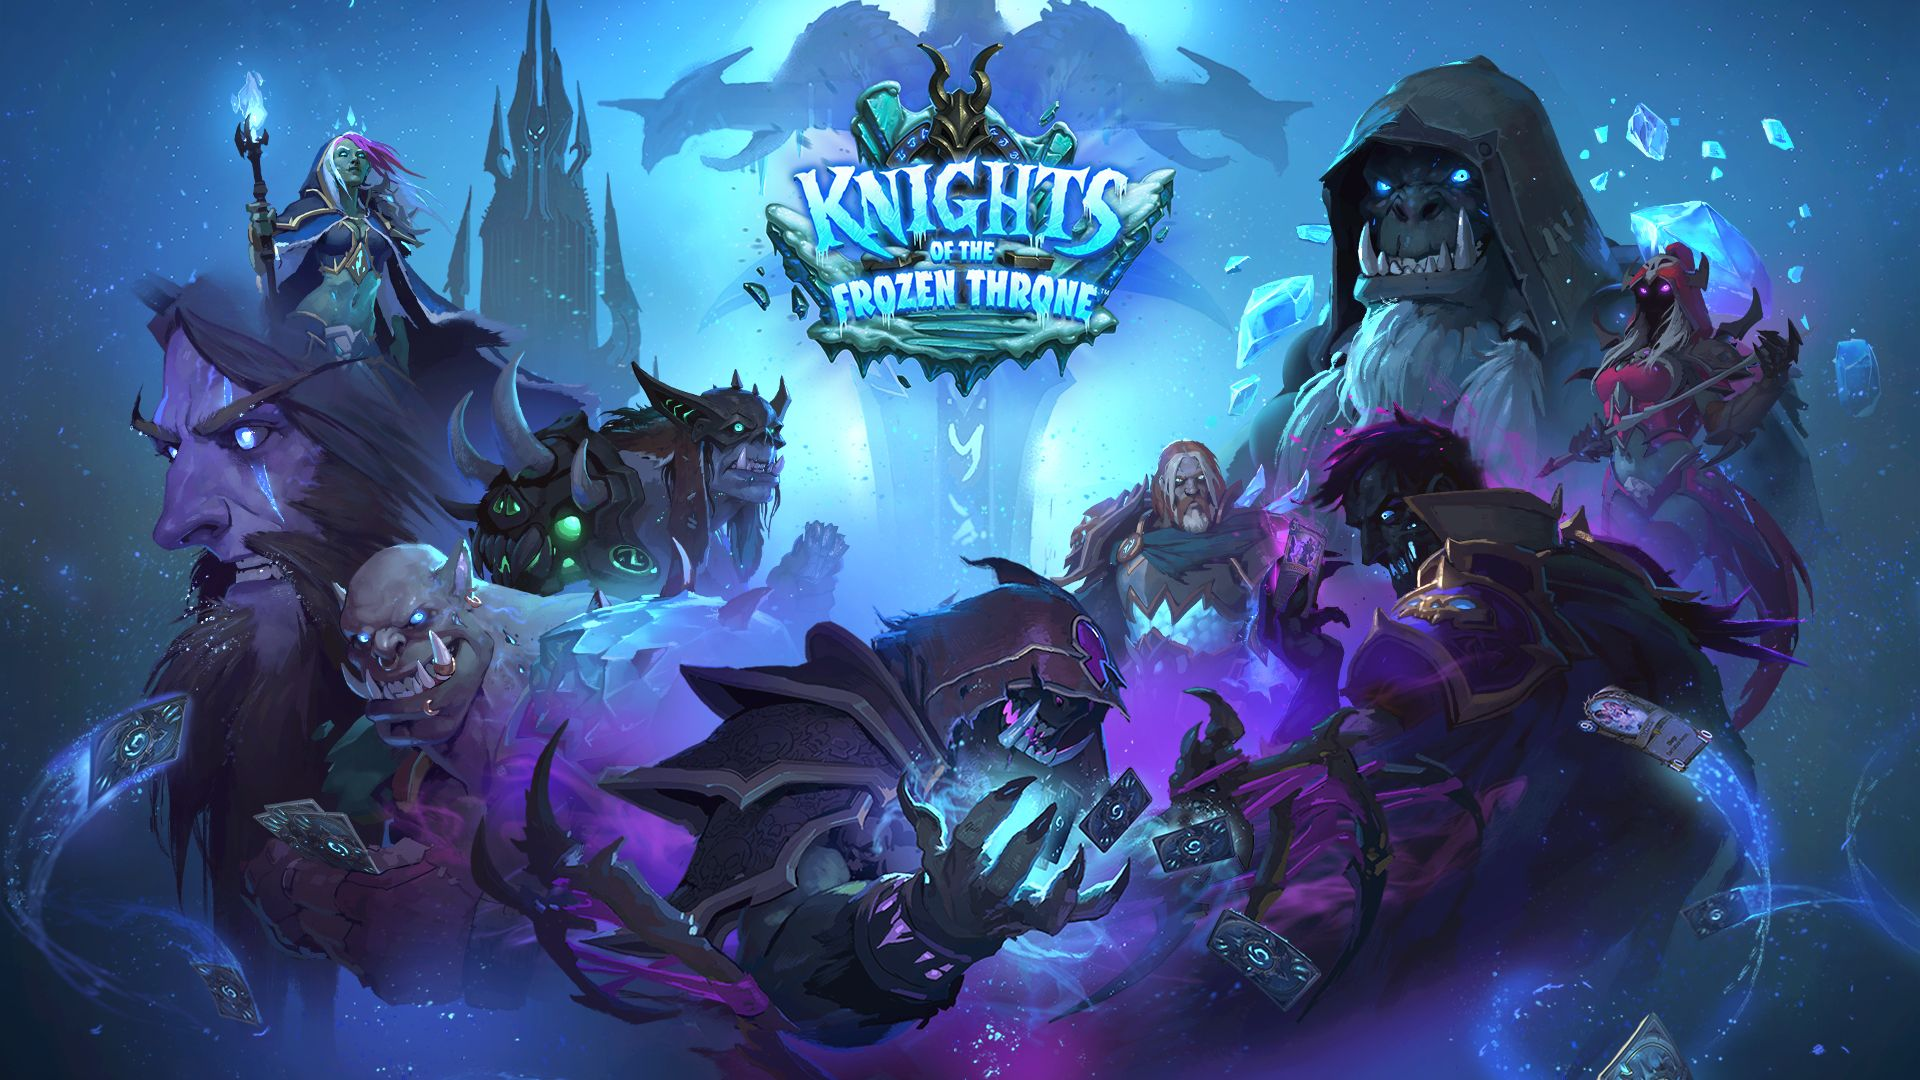 Wallpaper Knights of the frozen throne, video game, poster